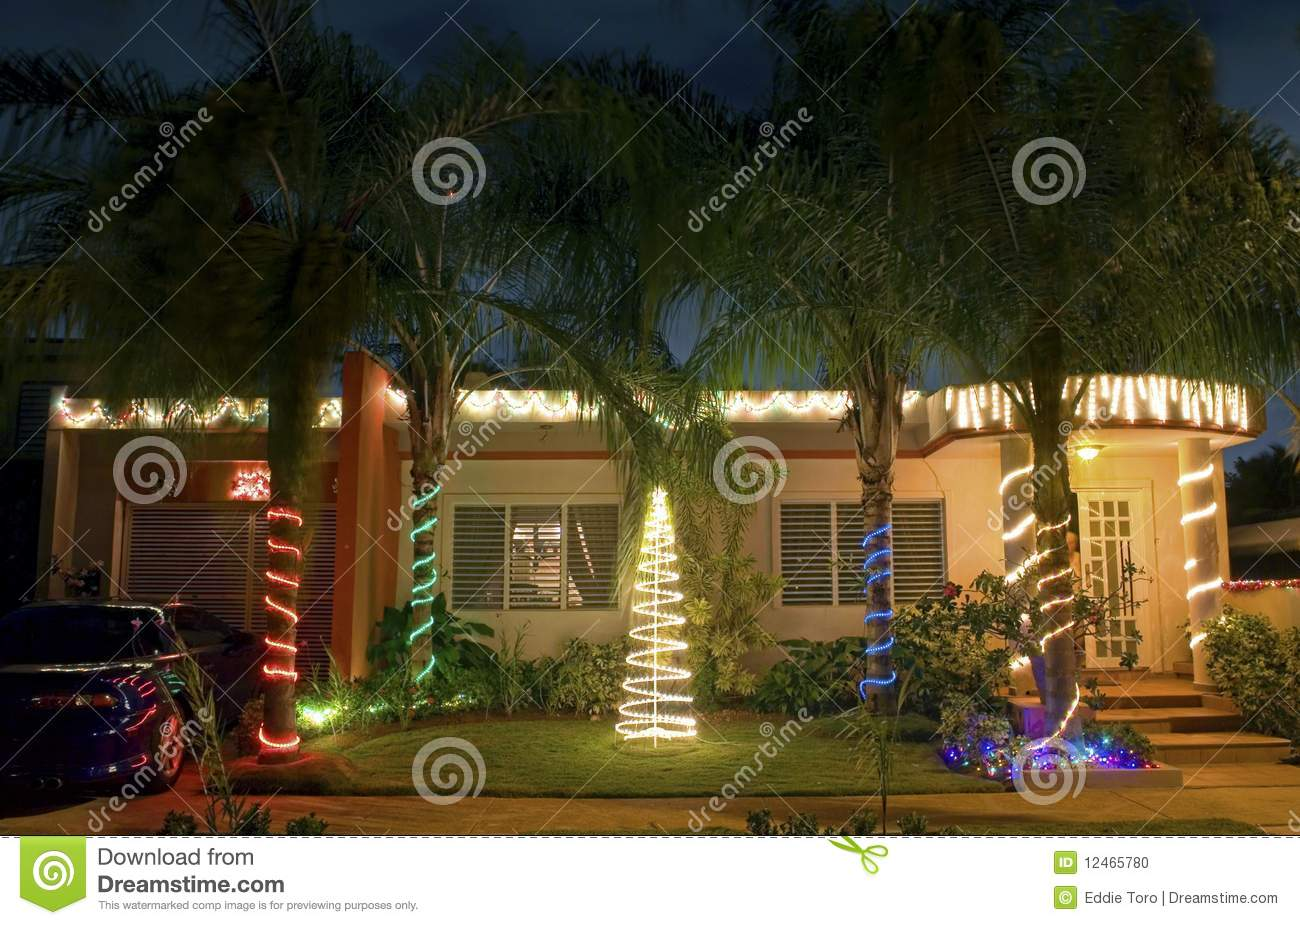 Christmas House In Puerto Rico Stock Photo  Image of decorations tropical 12465780